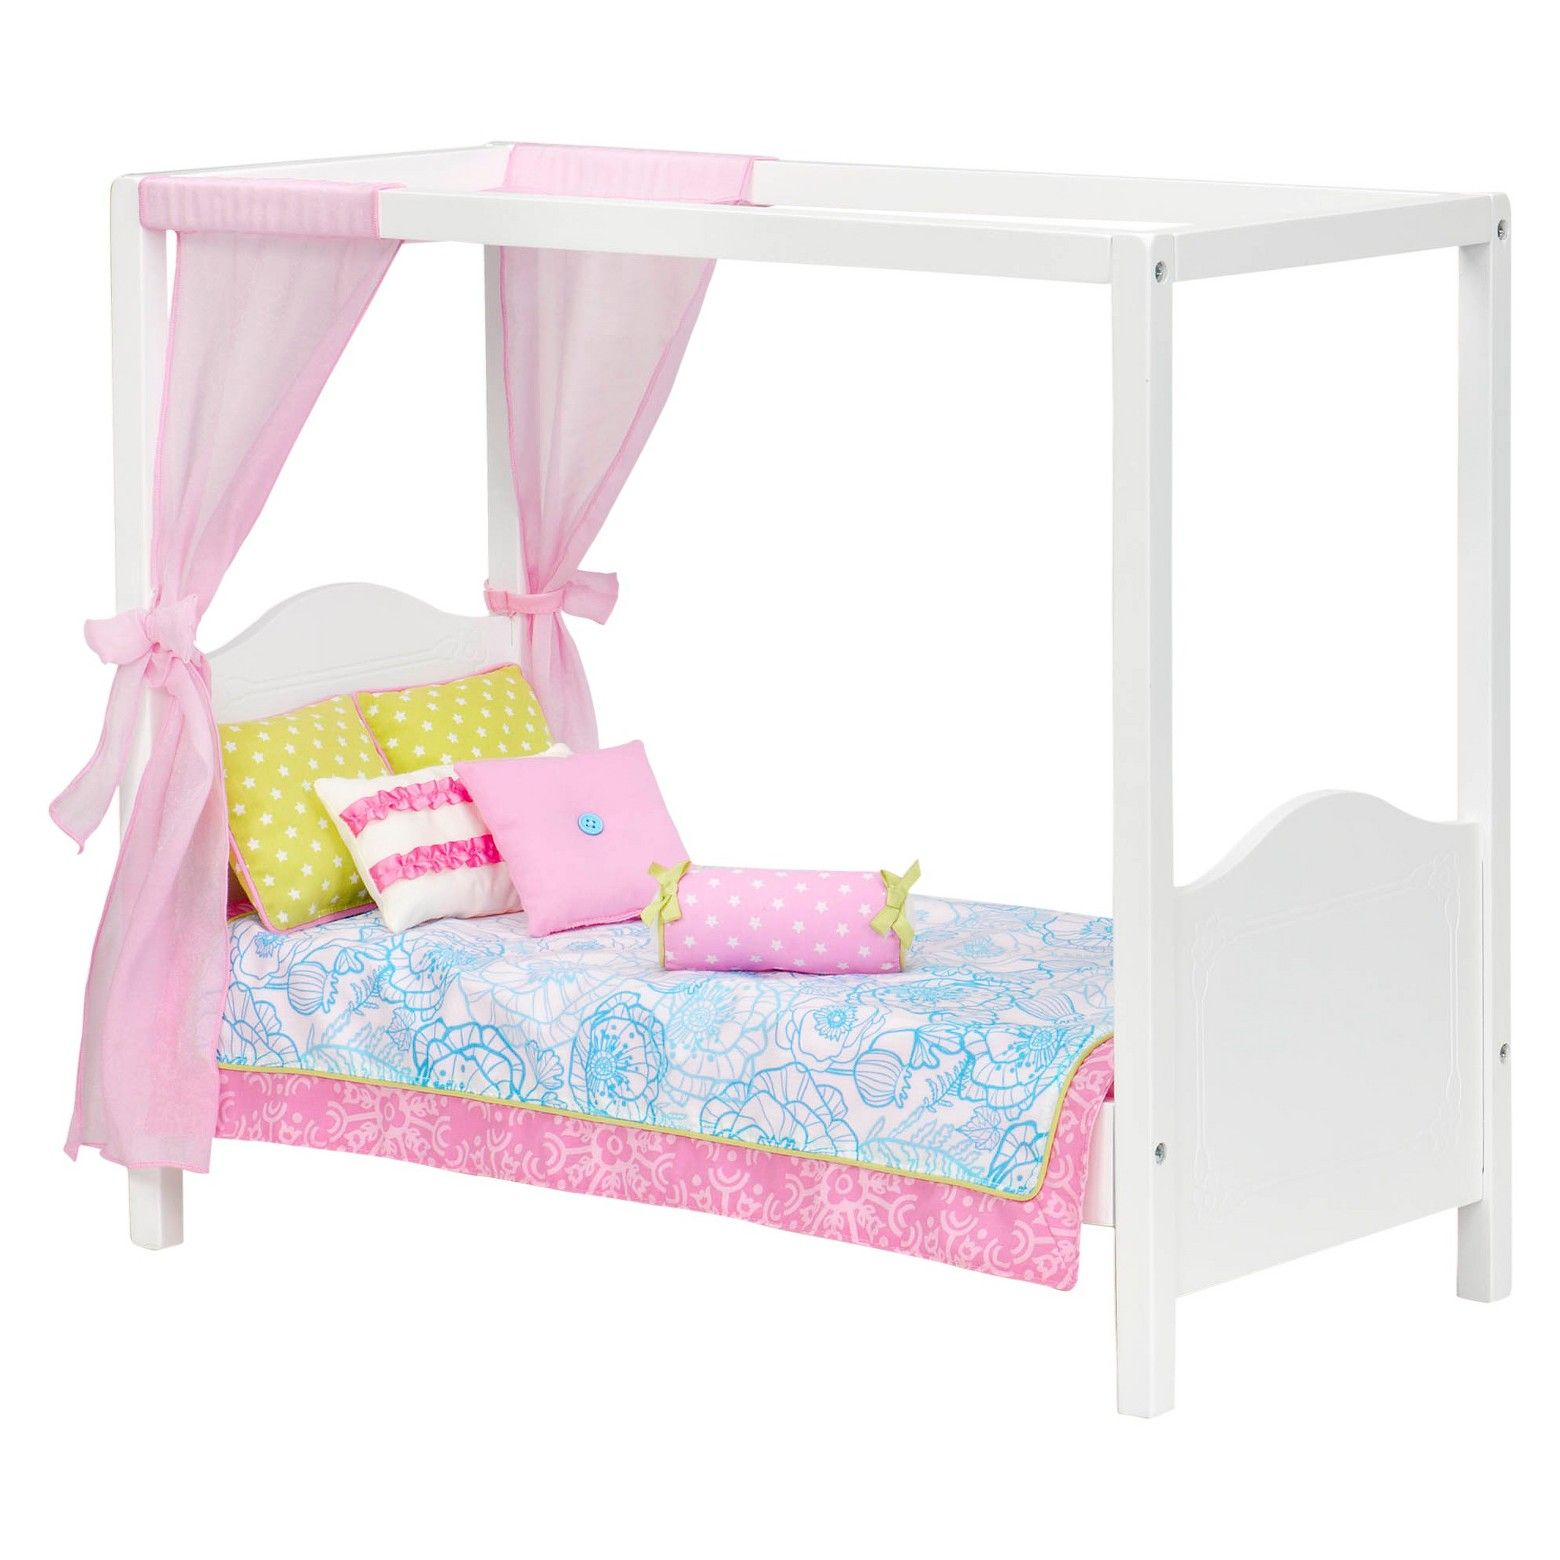 Our Generation My Sweet Canopy Bed Blue & Pink Floral